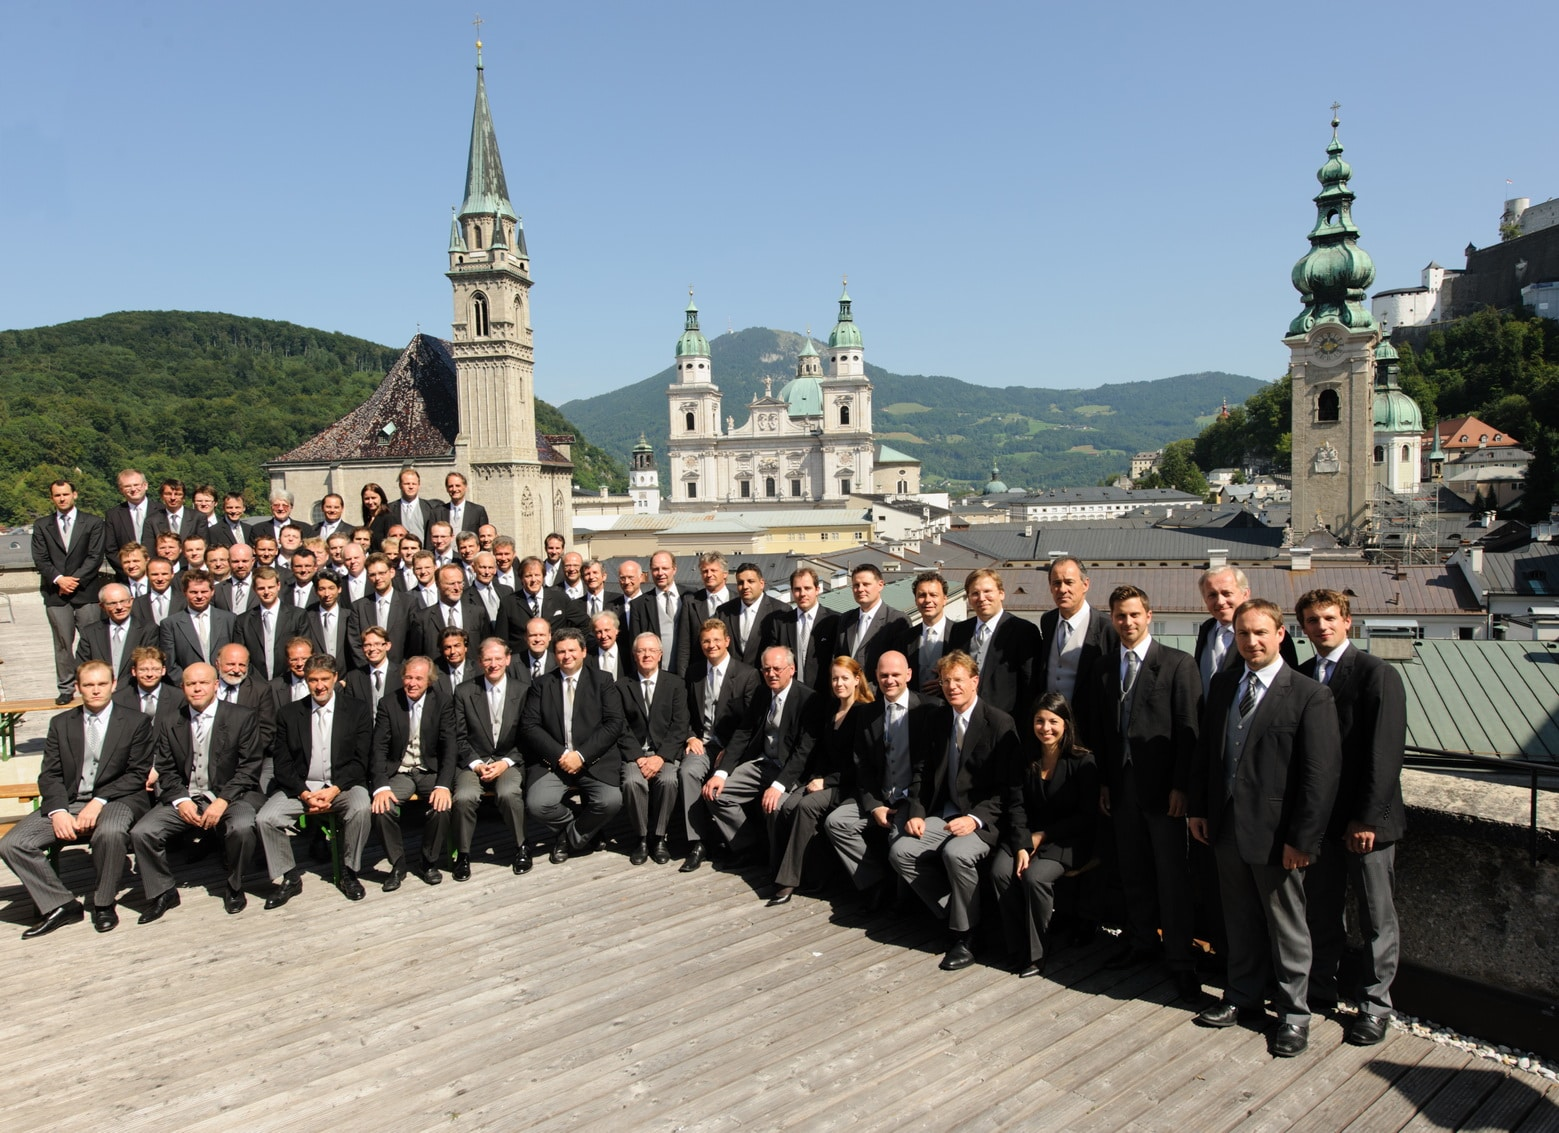 The Vienna Philharmonic Orchestra in Salzburg